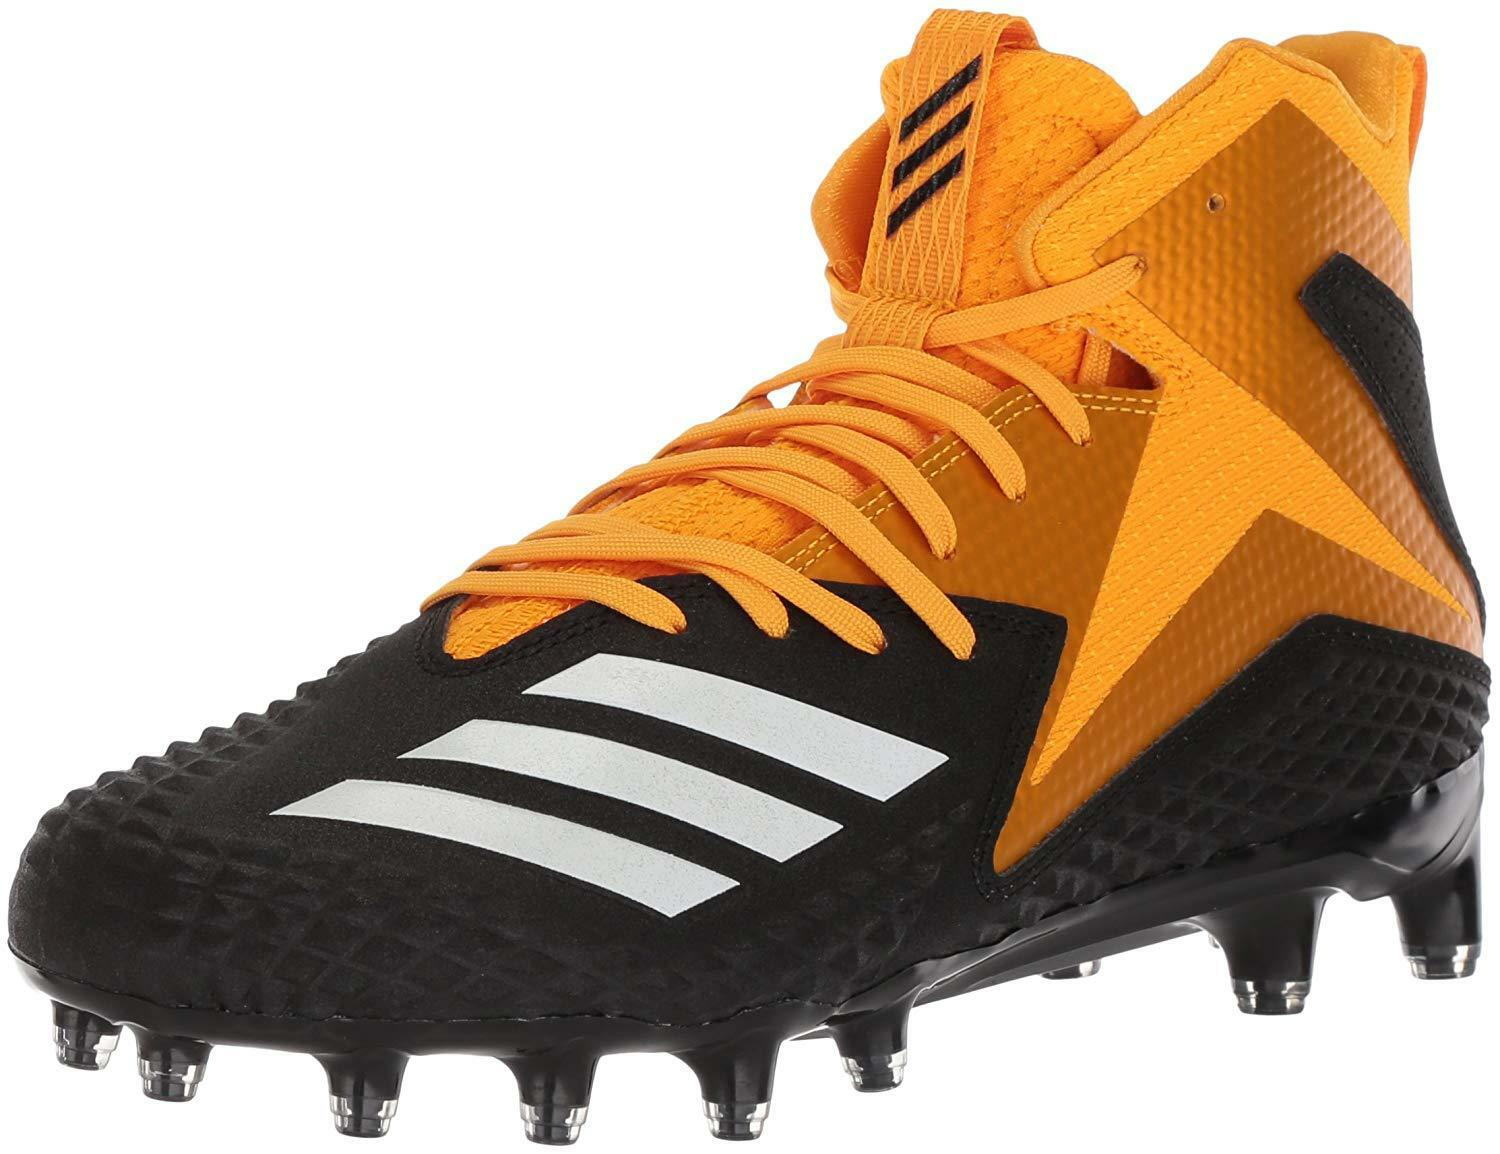 Adidas Mens Freak X Carbon mid Low Top Lace Up Soccer Sneaker